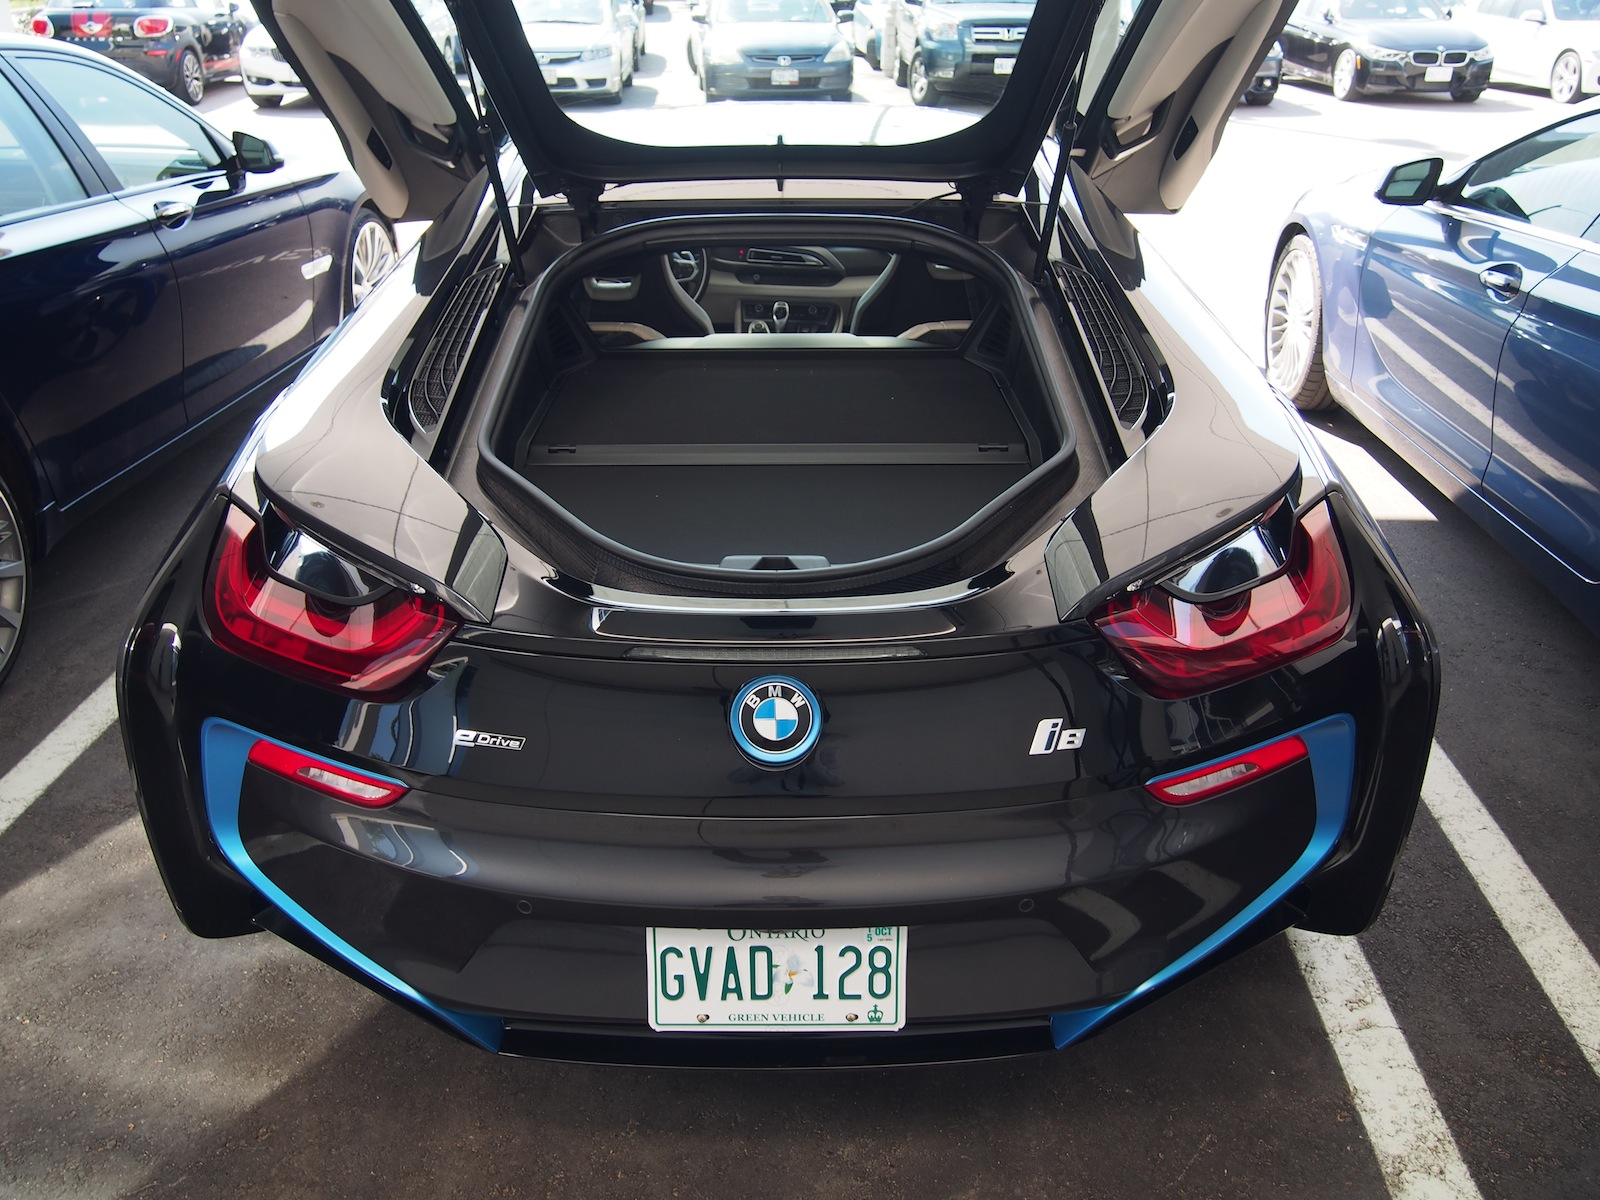 Richmond Hill Mitsubishi >> 2015 BMW i8 Quick Look and Facts - Cars, Photos, Test Drives, and Reviews | Canadian Auto Review